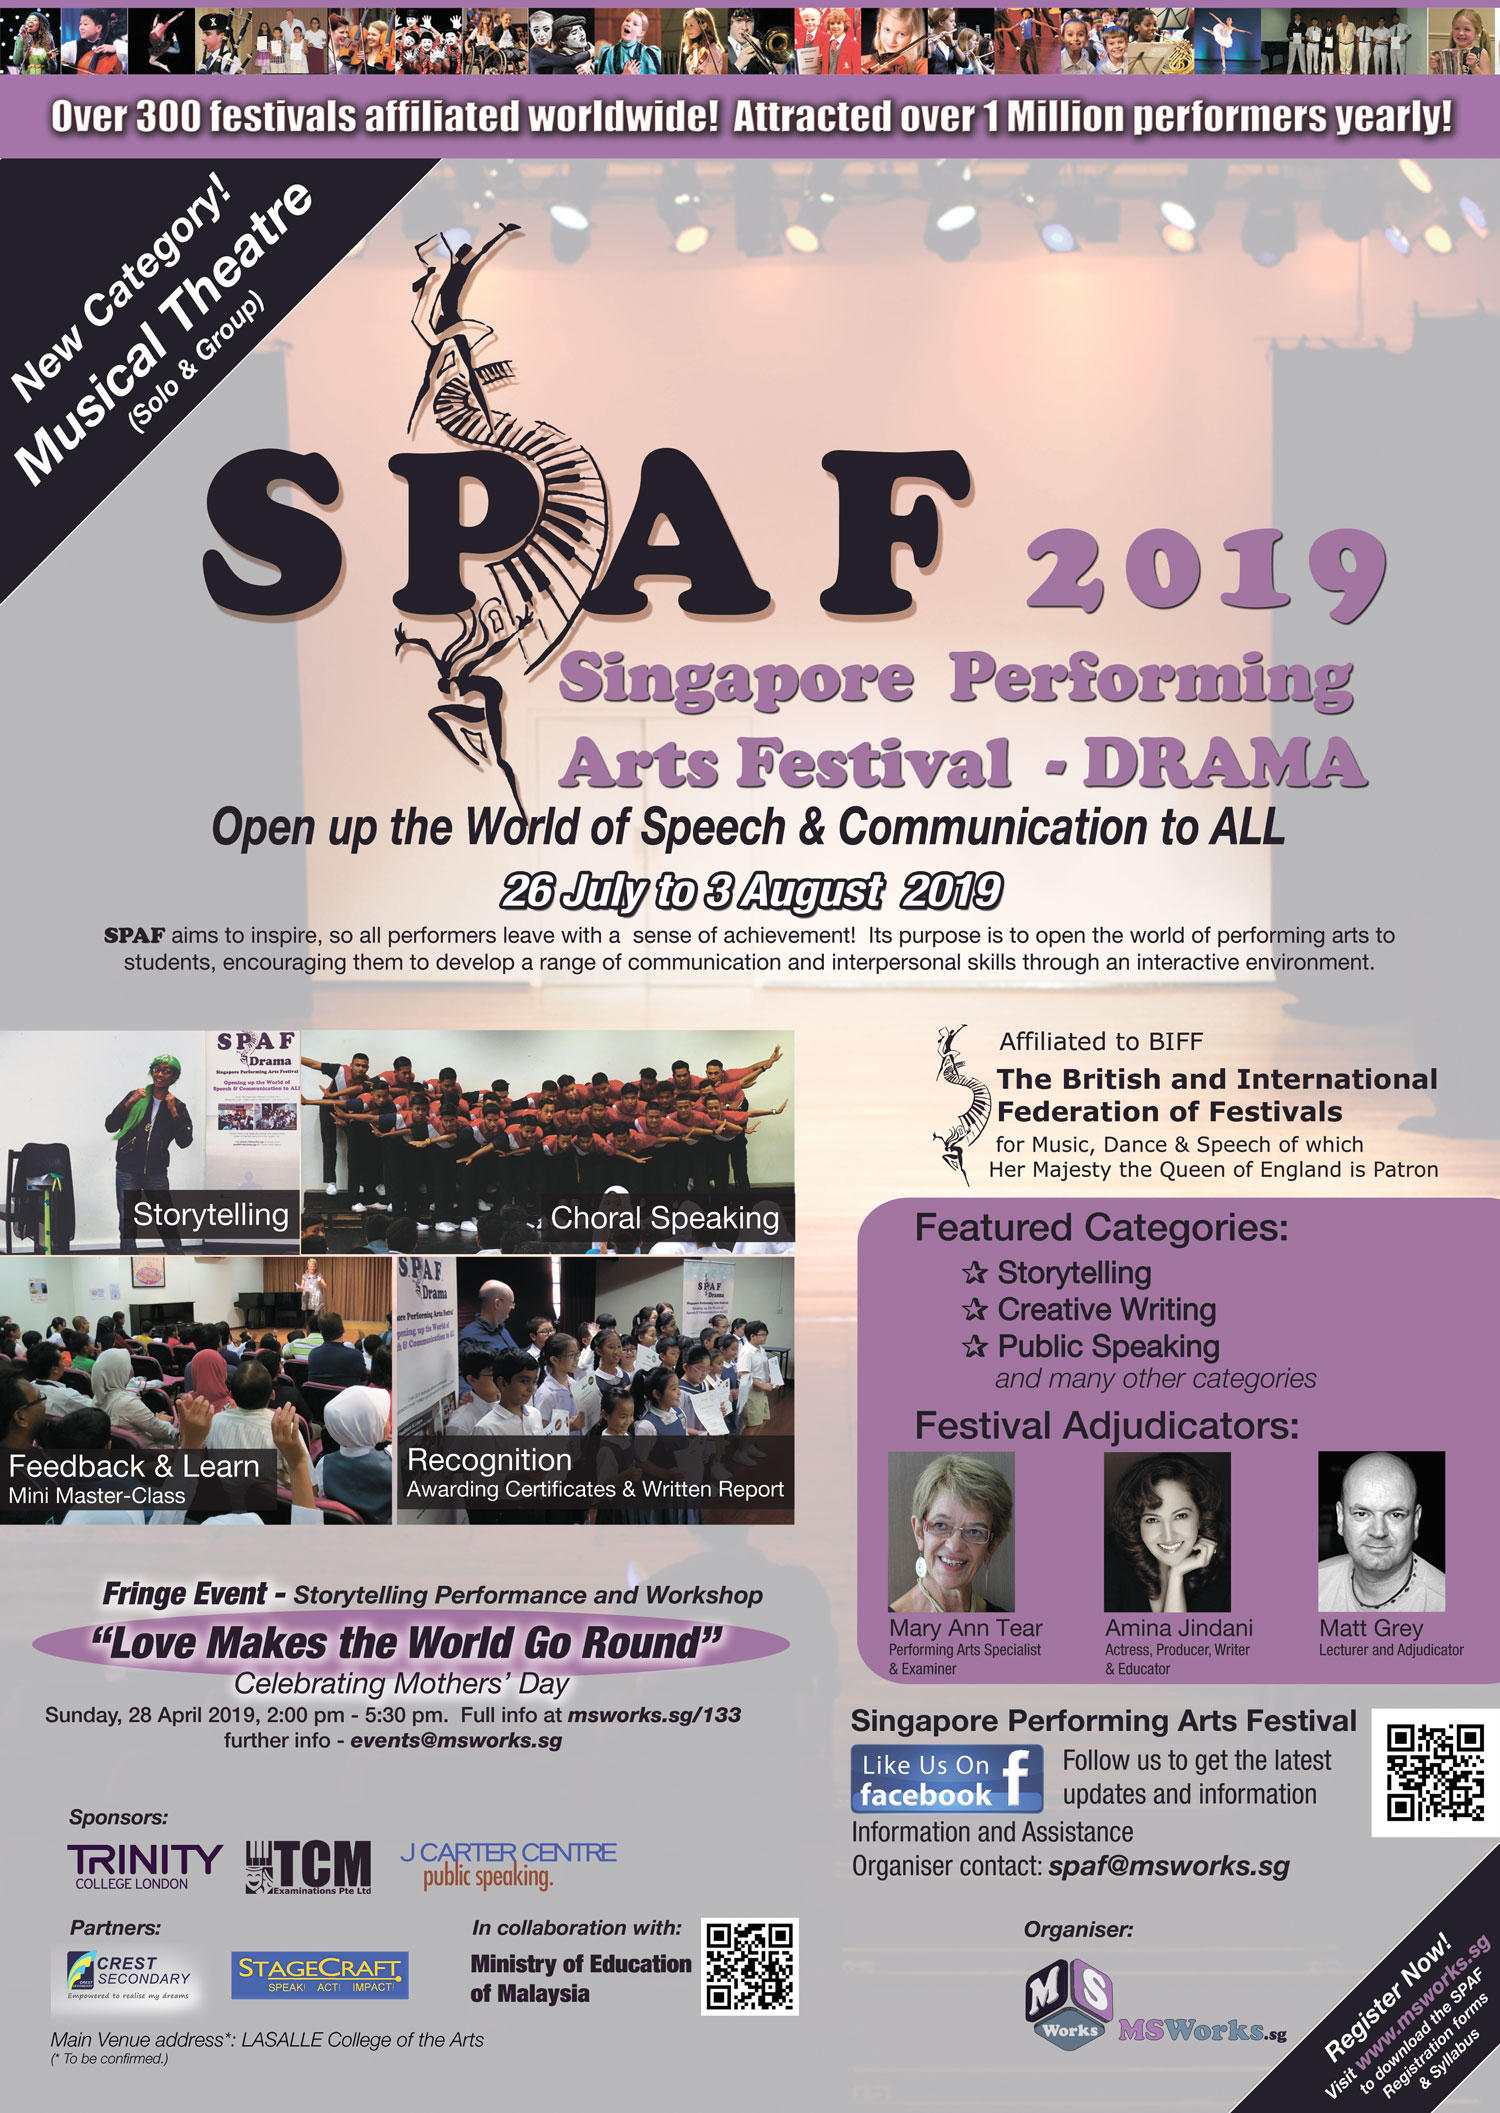 Singapore Performing Arts Festival 2019 - DRAMA - MS WORKS